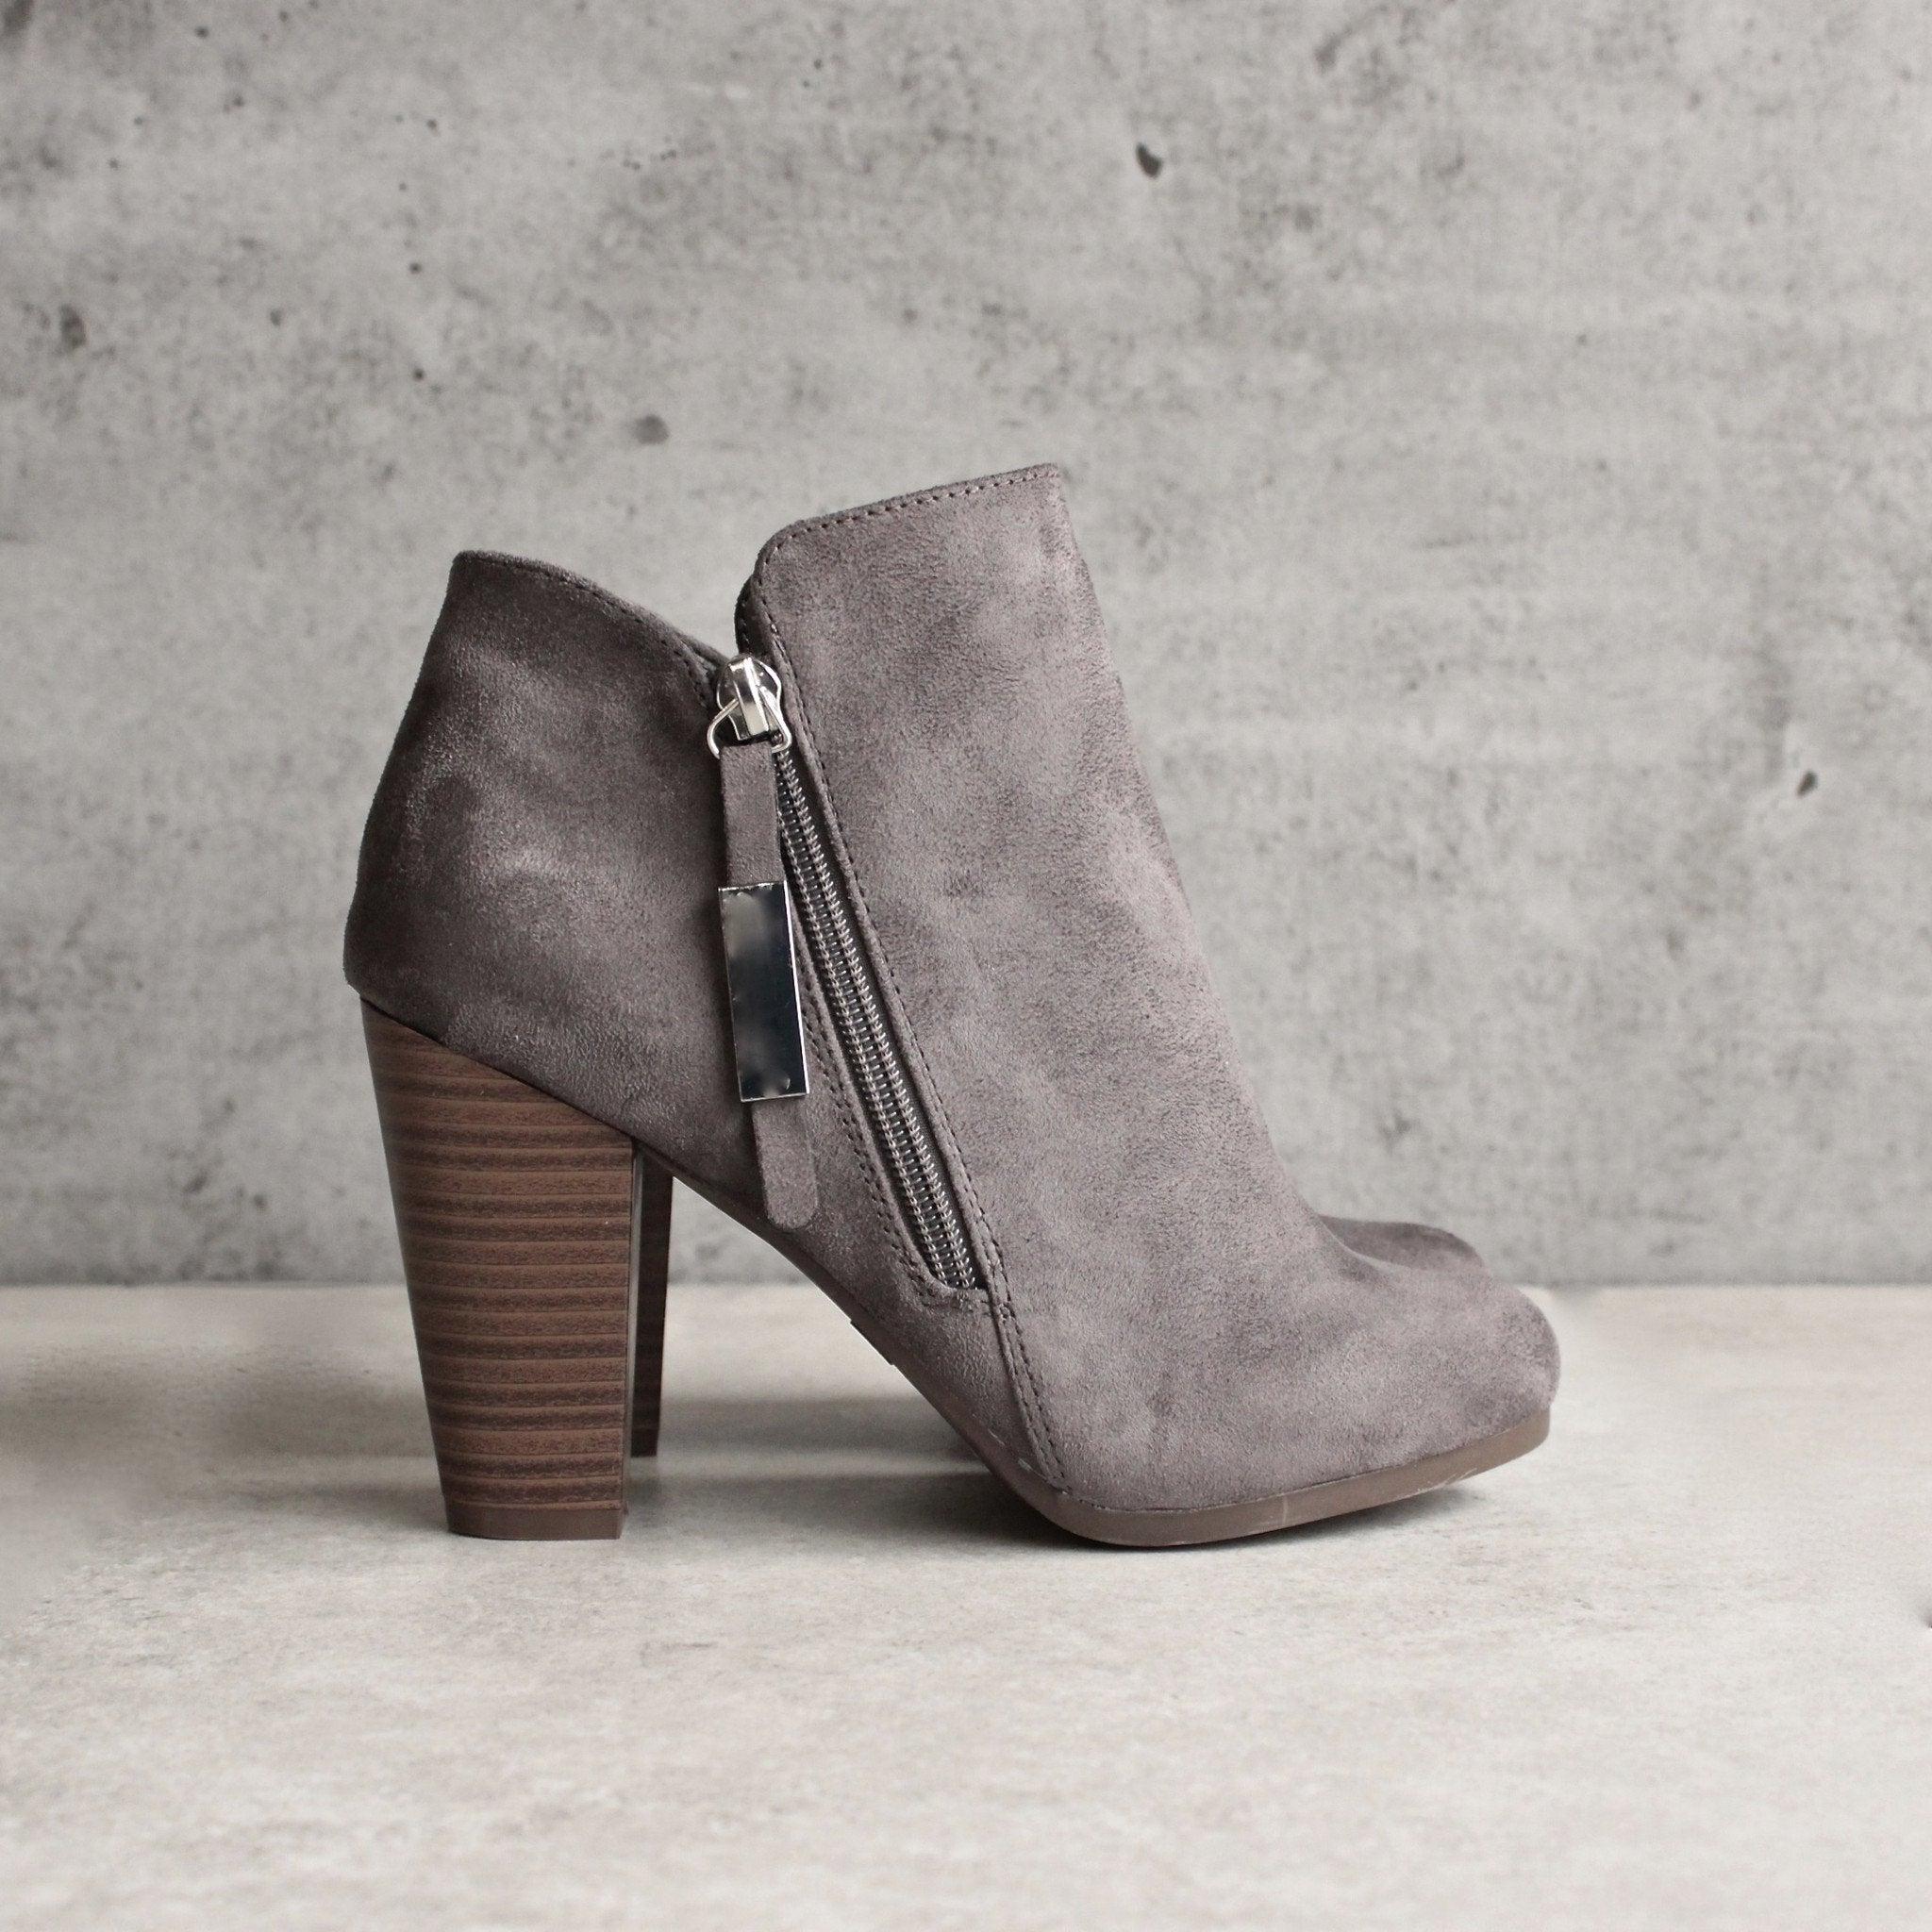 Grey Boots. Clothing. Shoes. Womens Shoes. All Womens Shoes. Grey Boots. Showing 48 of results that match your query. Search Product Result. Product - Forever Young Women's Solid Grey Rain Boot. Product - UGG Mini Bailey Bow II Women's Shoes Boots Grey. Product Image. Price $ Product Title.